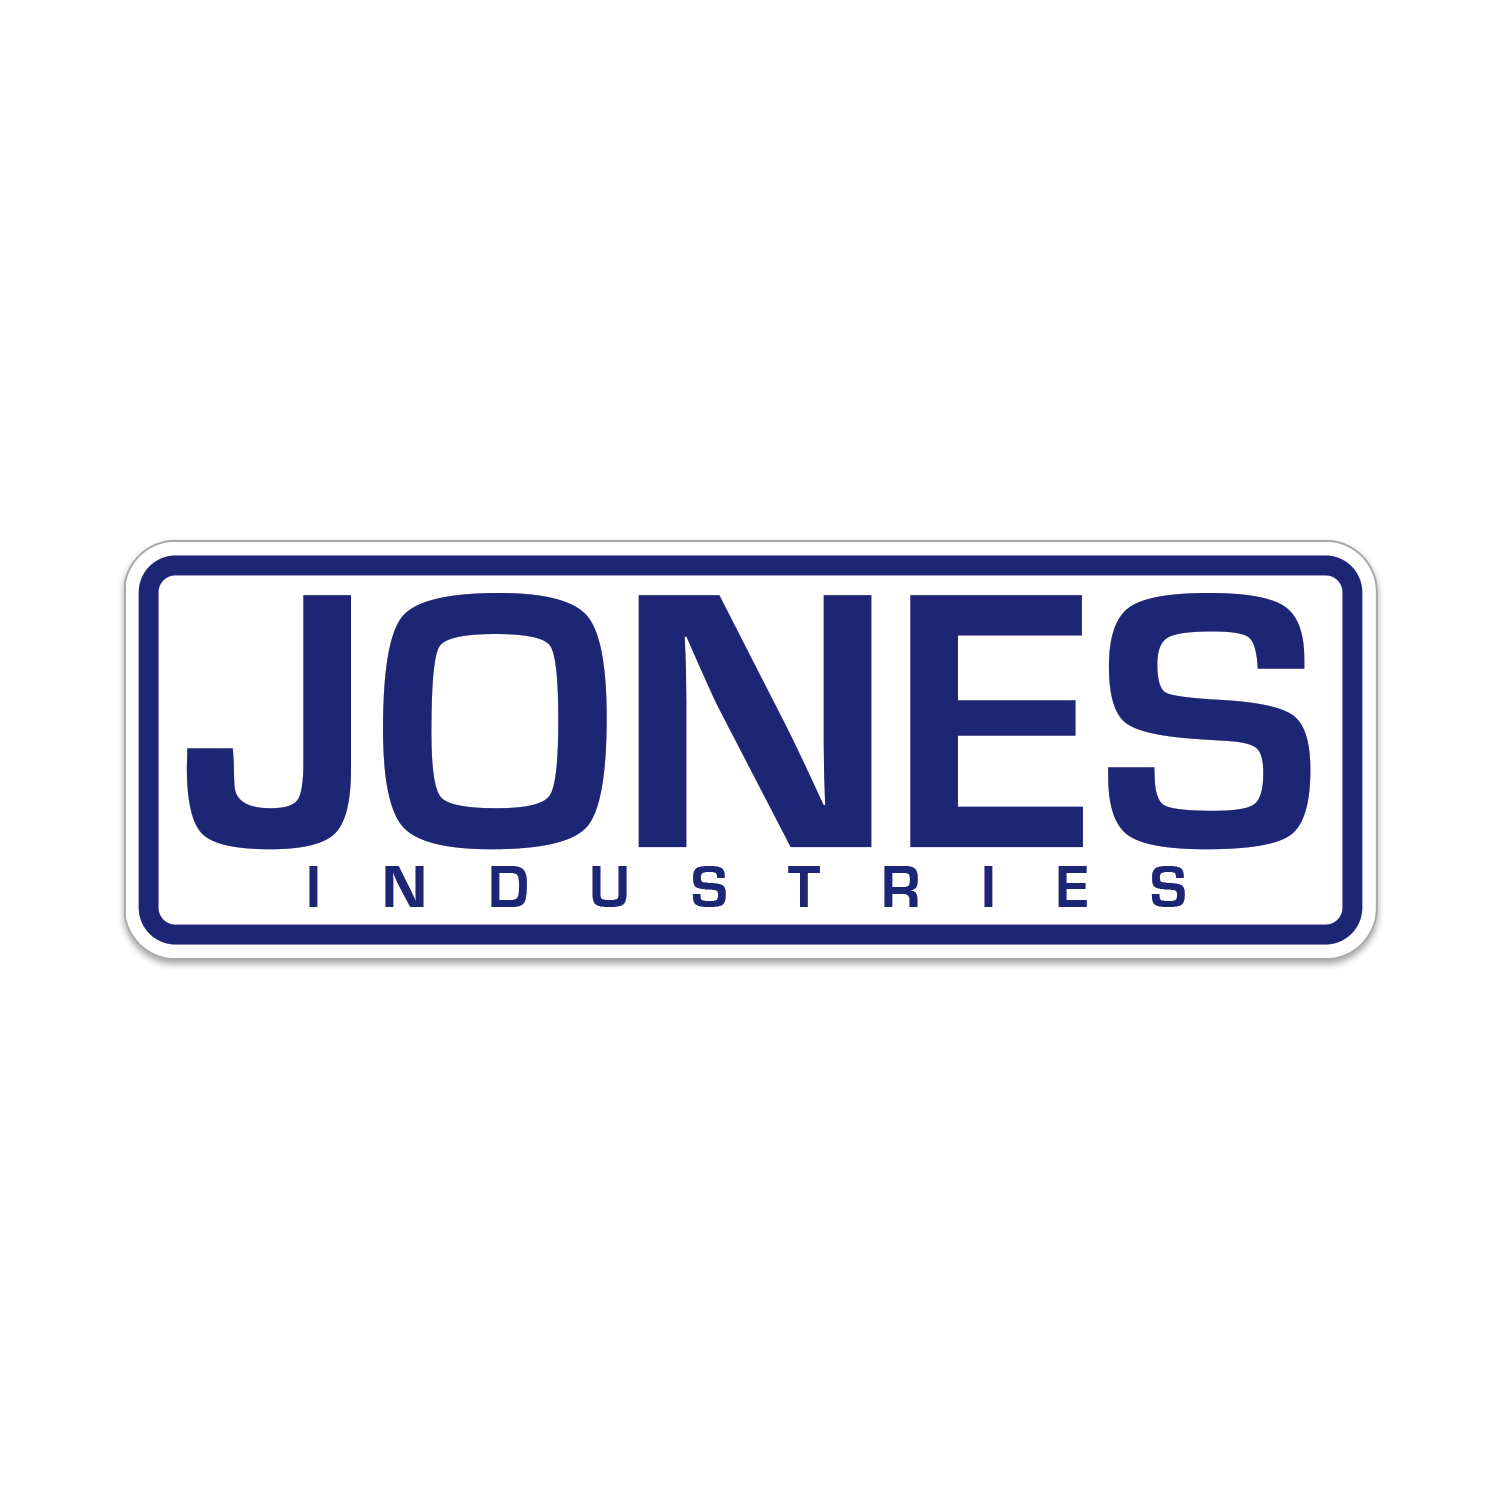 https://www.sswprinting.com/images/products_gallery_images/190101_Jones-Industries_hi-res.png